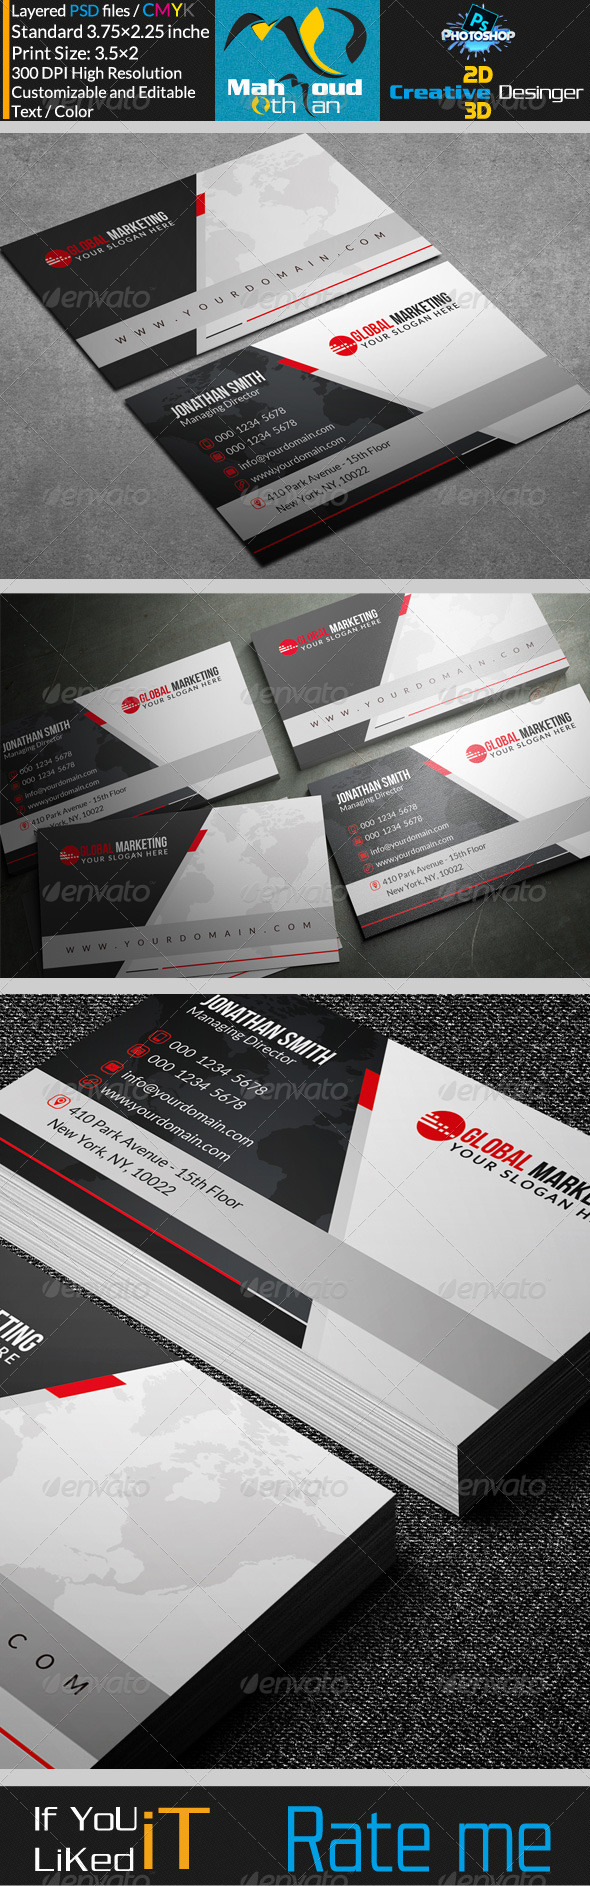 GraphicRiver Corportae Business Card V18 7518257